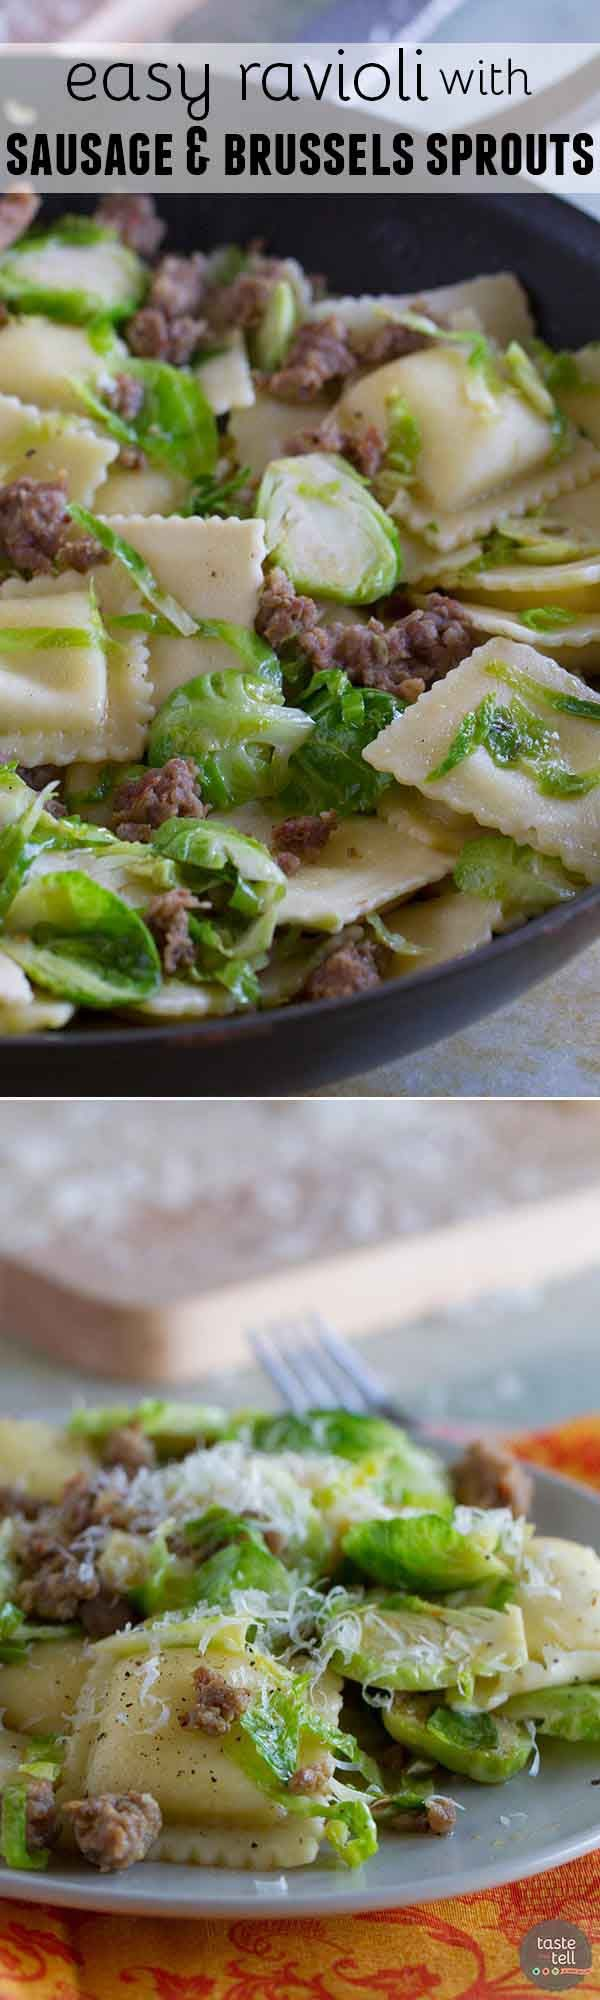 Looking for an easy, fast, dinner with less than 10 ingredient? This Easy Ravioli with Sausage and Brussels Sprouts comes together in well under 30 minutes and is delicious and filling.